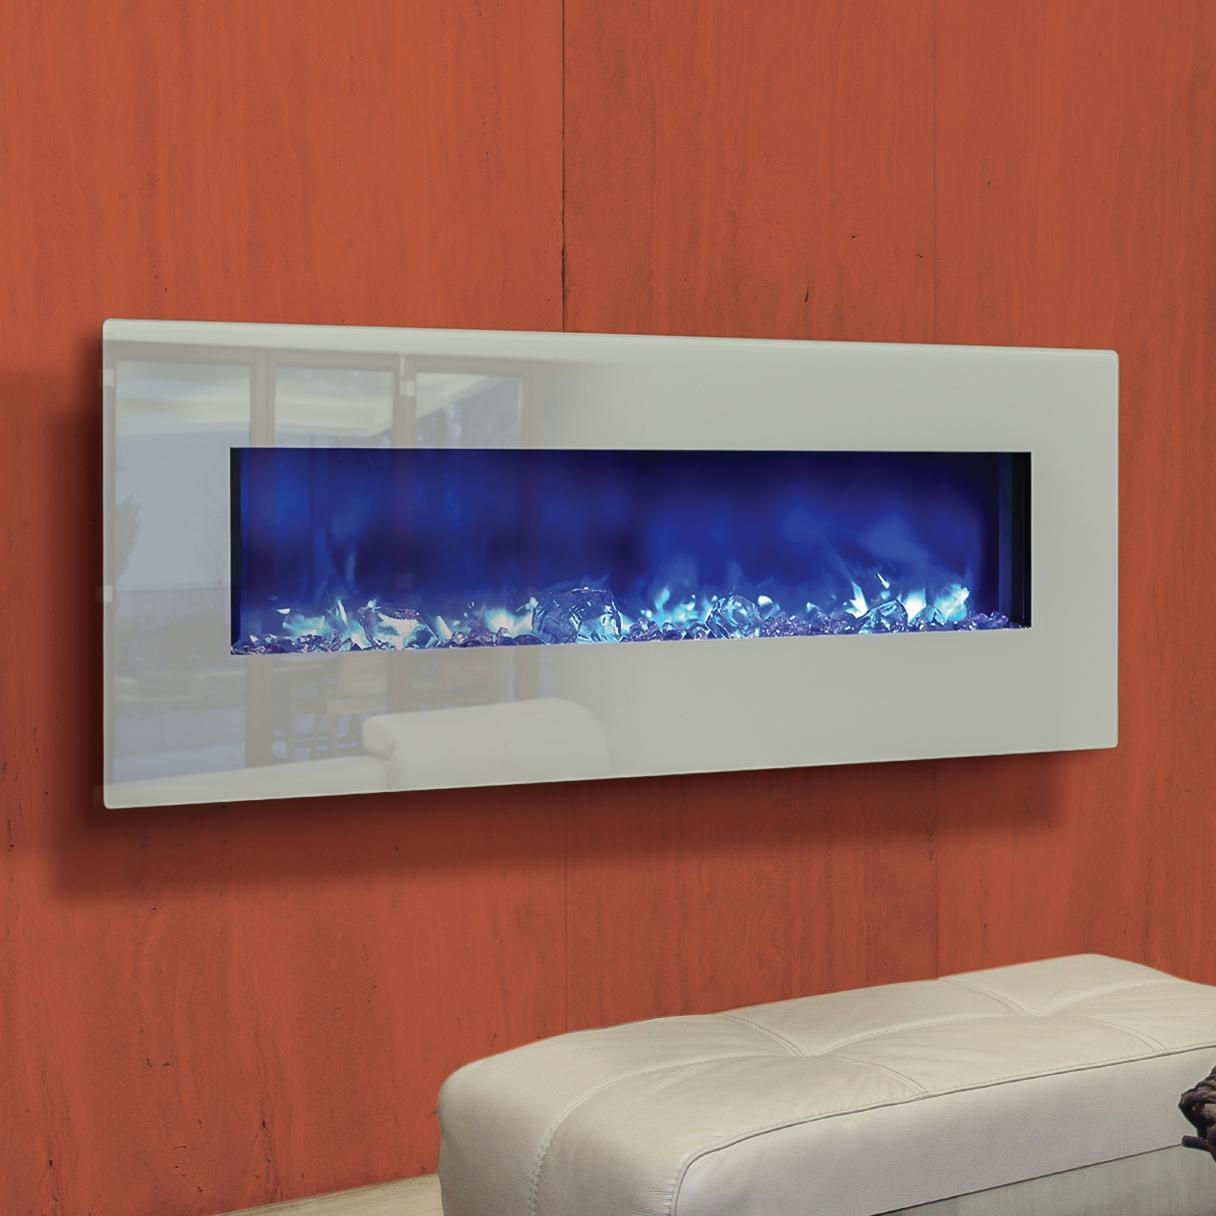 Amantii Fire & Ice Series 48-inch Wall Mount/Built-in Electric Fireplace - AMANTI 48